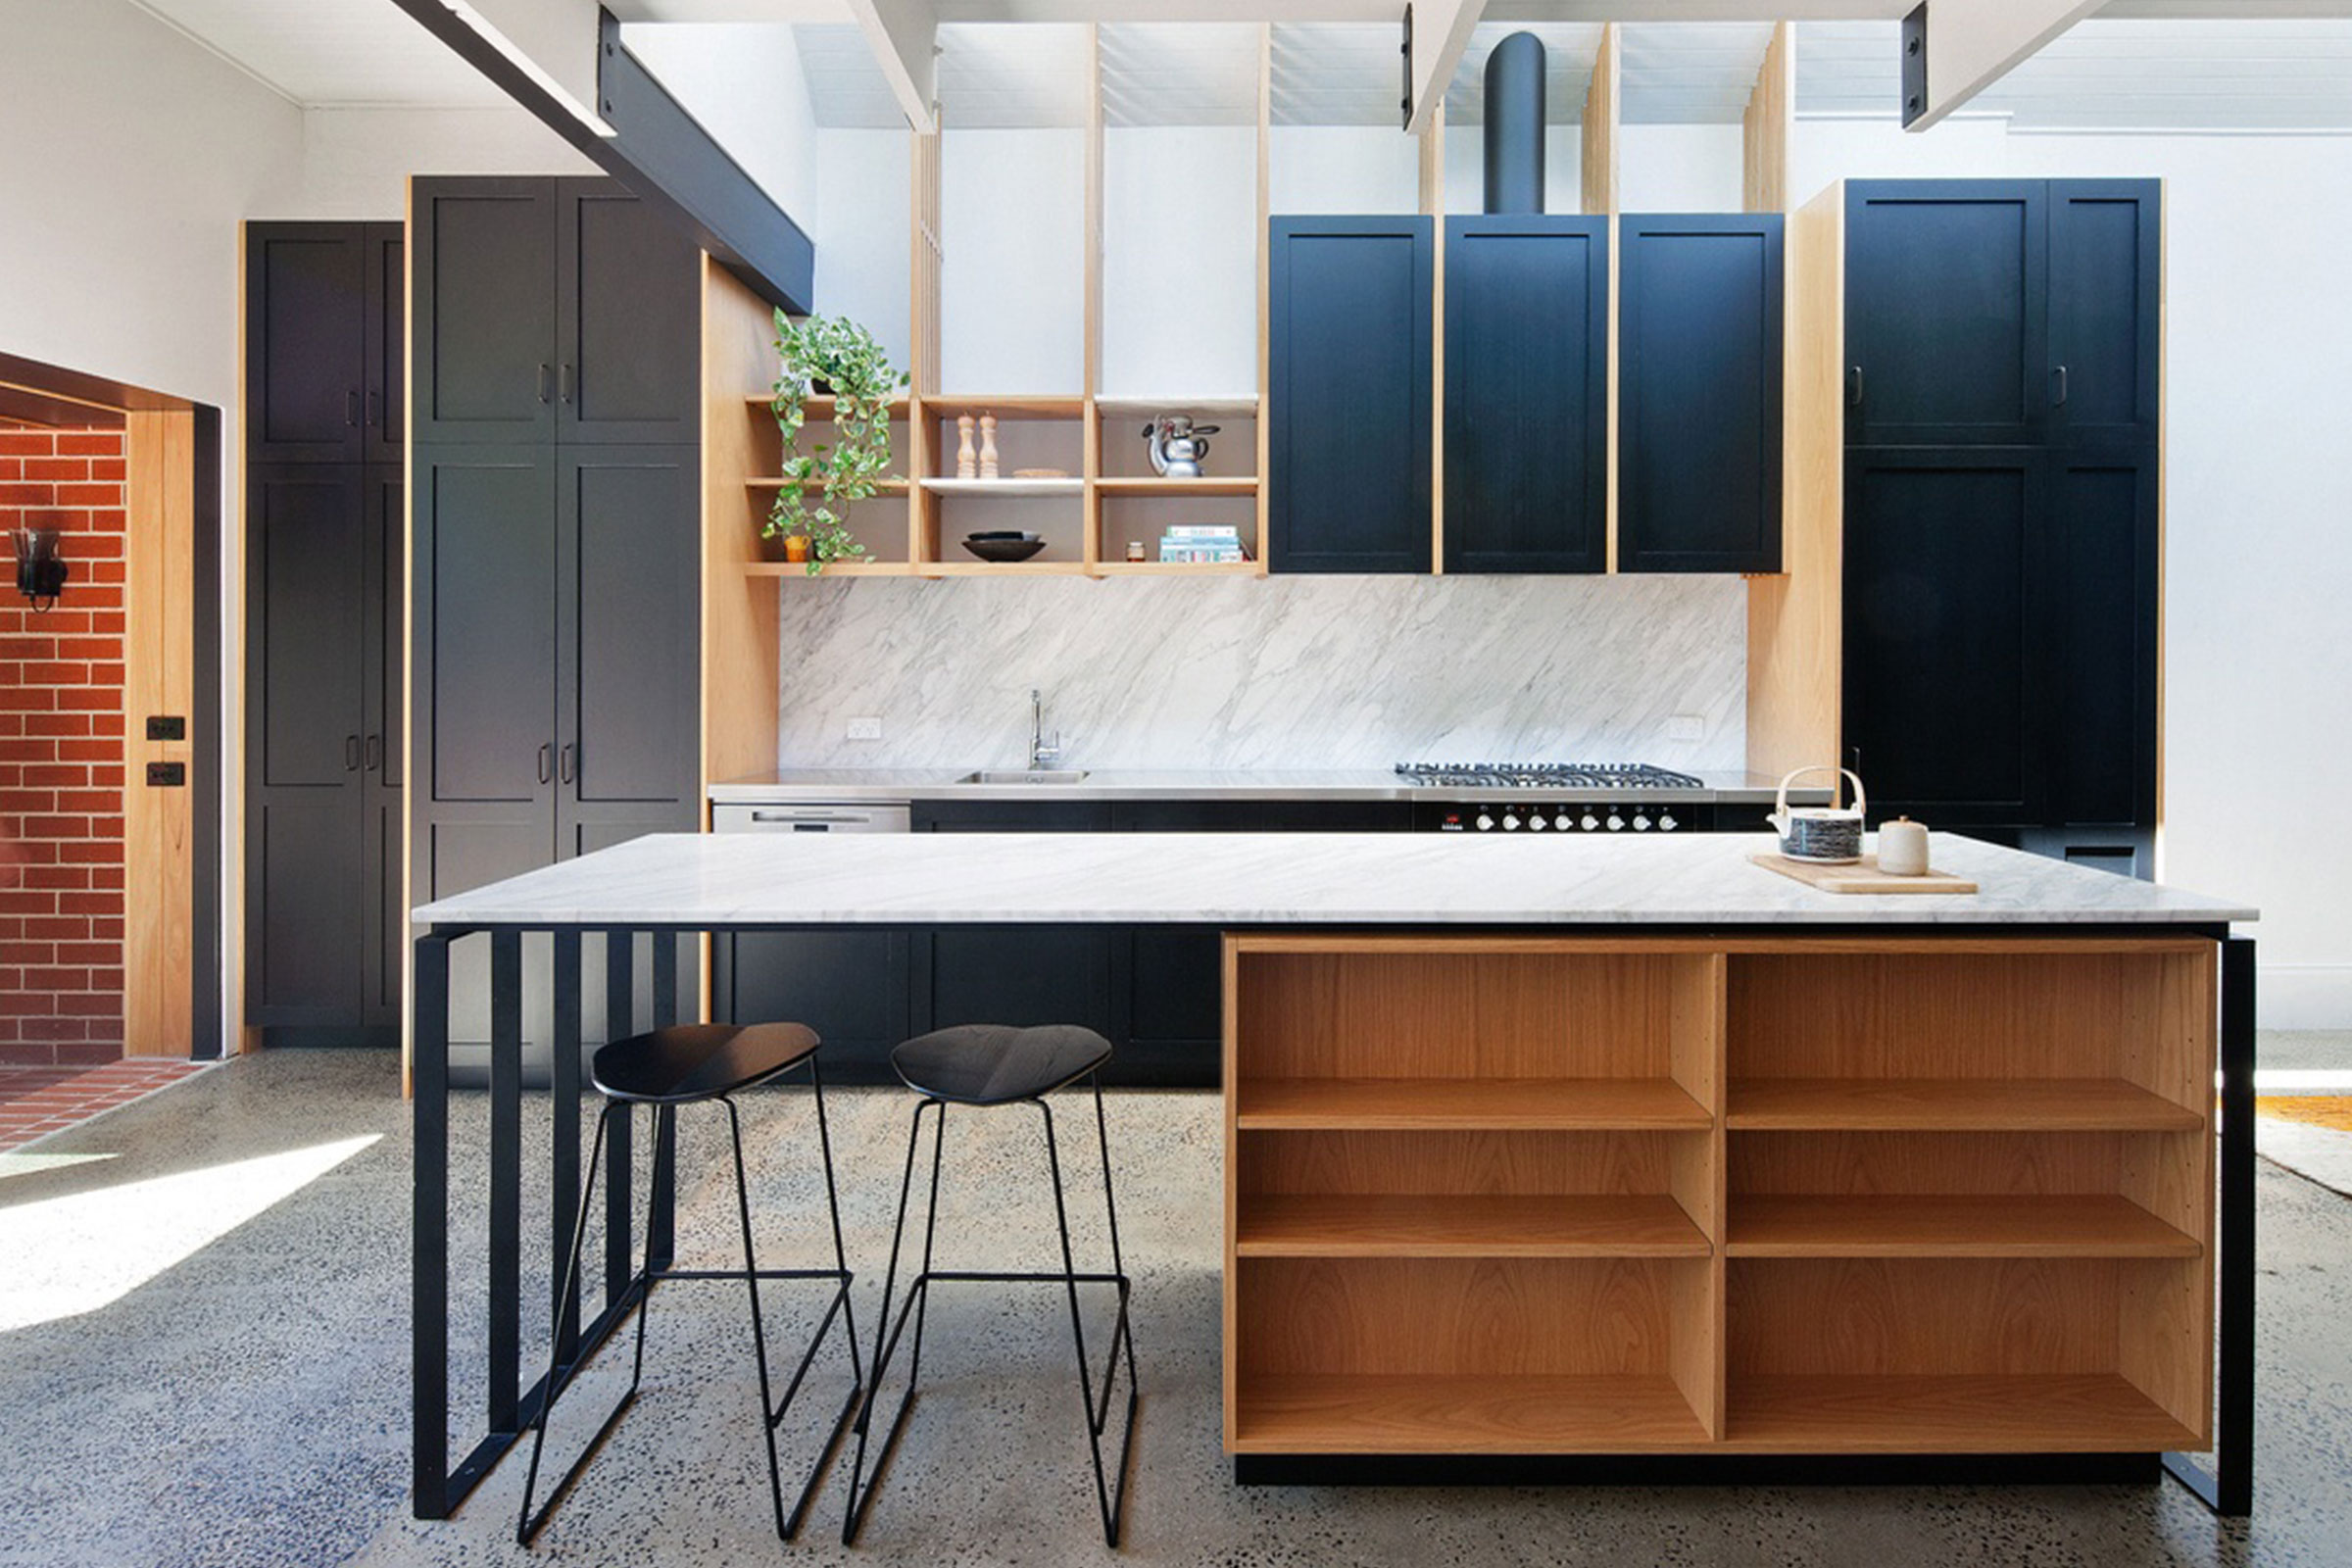 Australian Kitchen 5 Well Designed Australian Kitchens Hey Gents